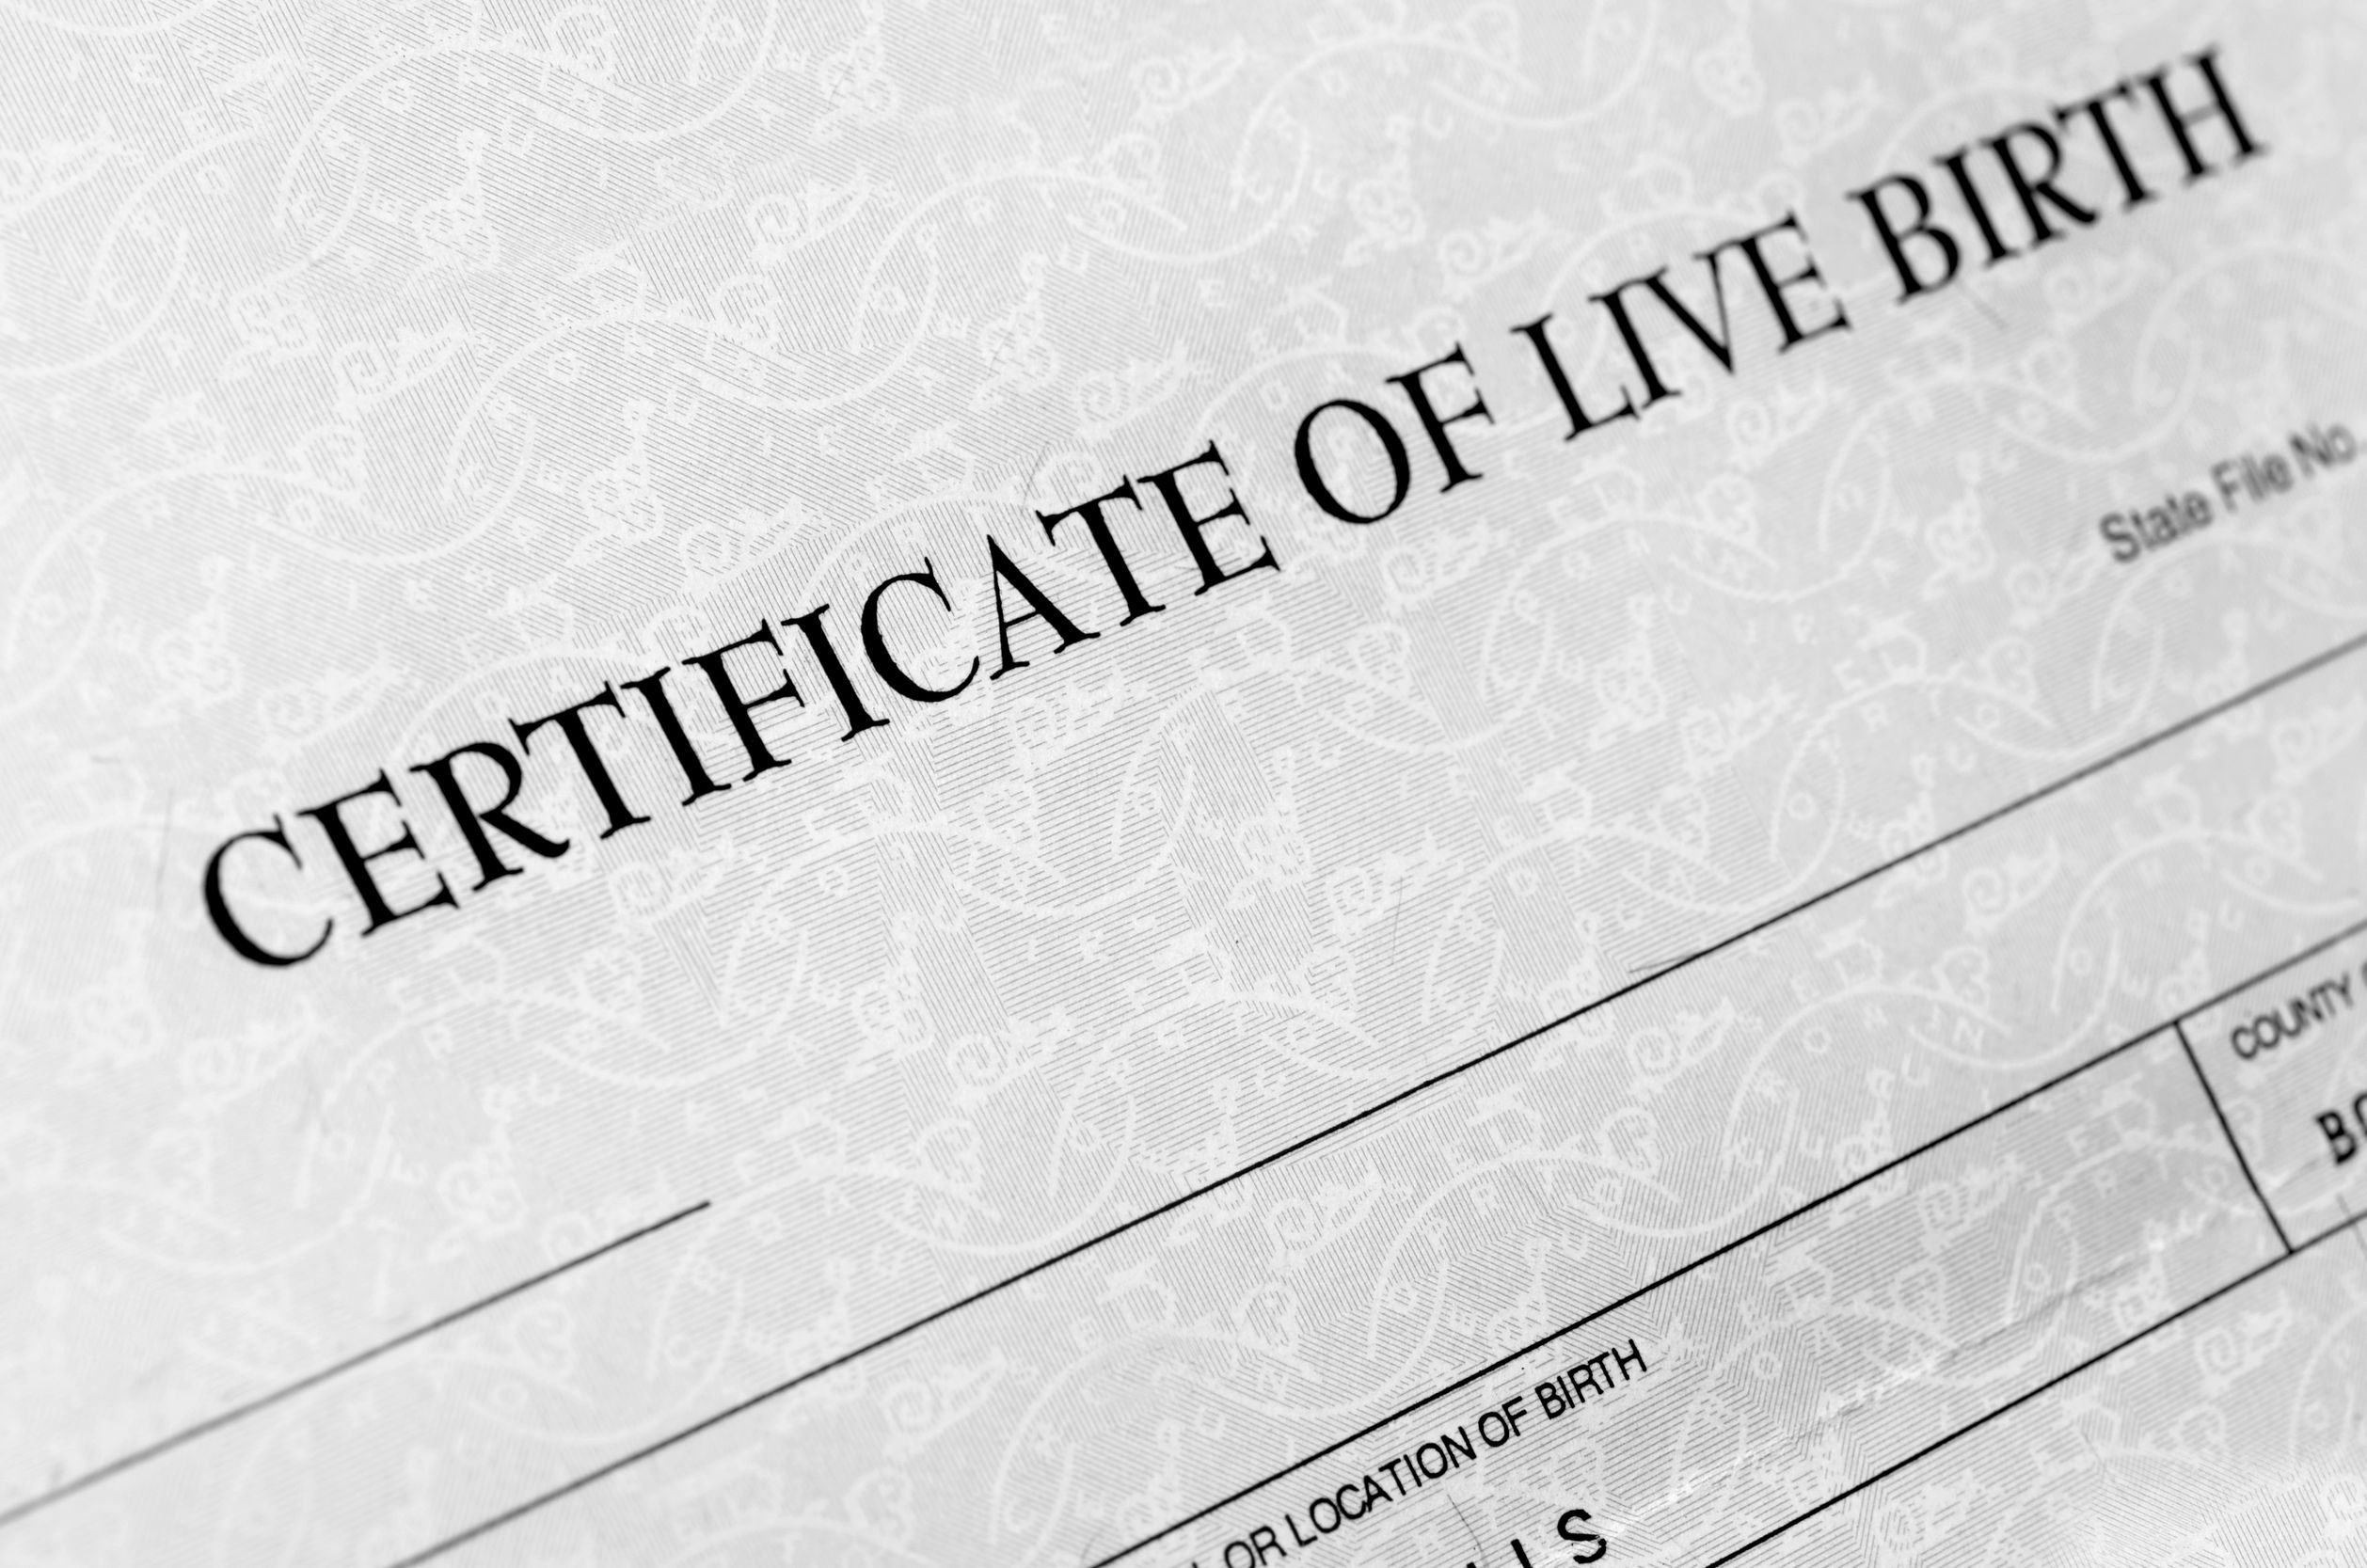 Being on the birth certificate does not equate to enforceable rights